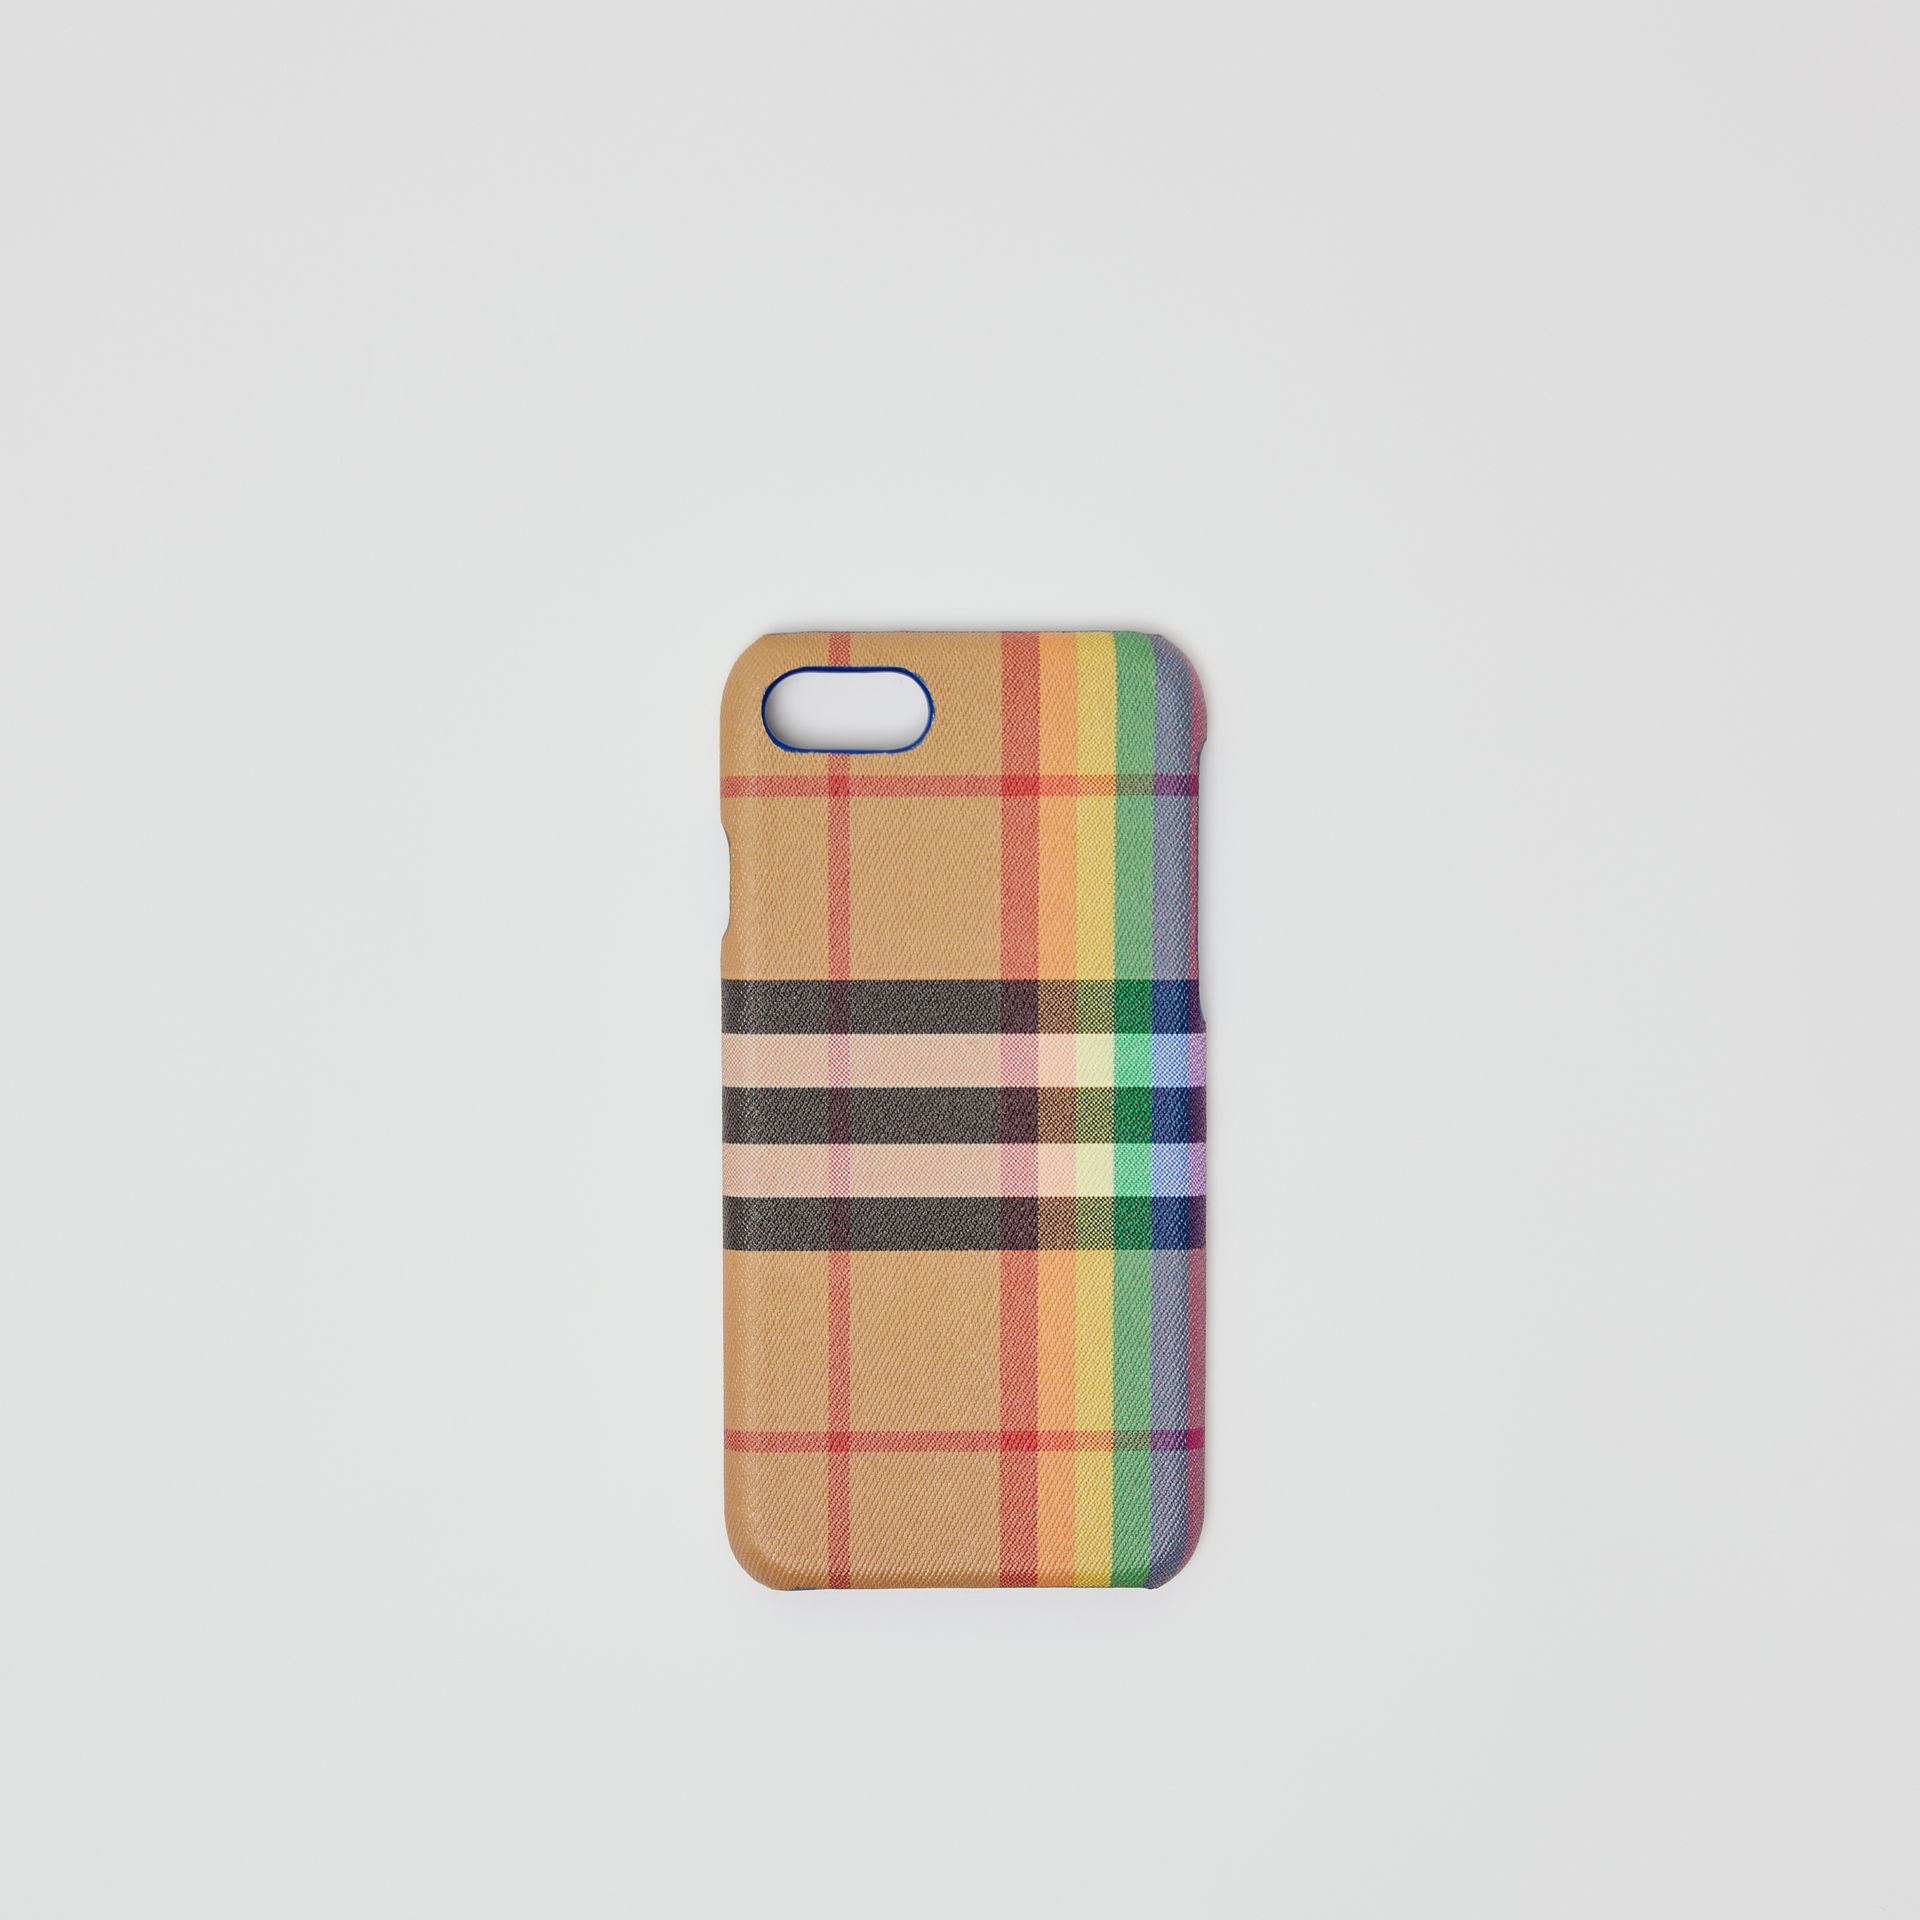 Custodia per iPhone 8 in pelle e motivo Rainbow vintage check (Multicolore/giallo Antico) | Burberry - immagine della galleria 0